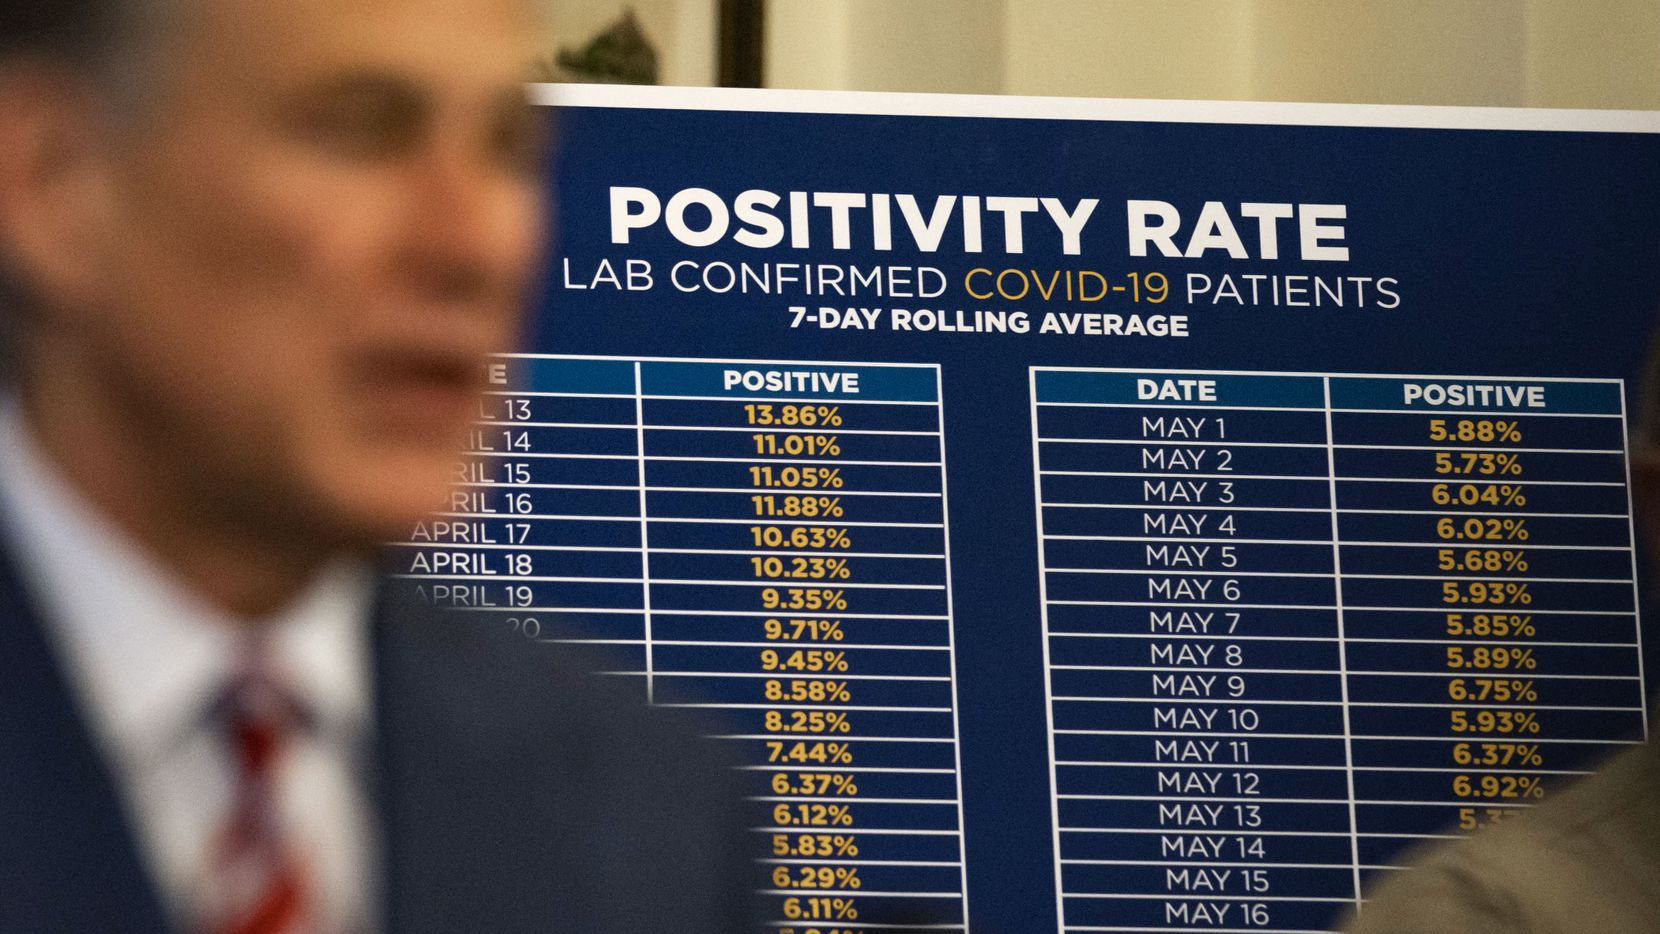 A Positivity Rate chart showing the rate of lab-confirmed COVID-19 patients is positioned behind Texas Gov. Greg Abbott as he announces the reopening of more Texas businesses during the COVID-19 pandemic at a press conference at the Texas State Capitol in Austin on May 18, 2020. (Lynda M. Gonzalez/The Dallas Morning News Pool)